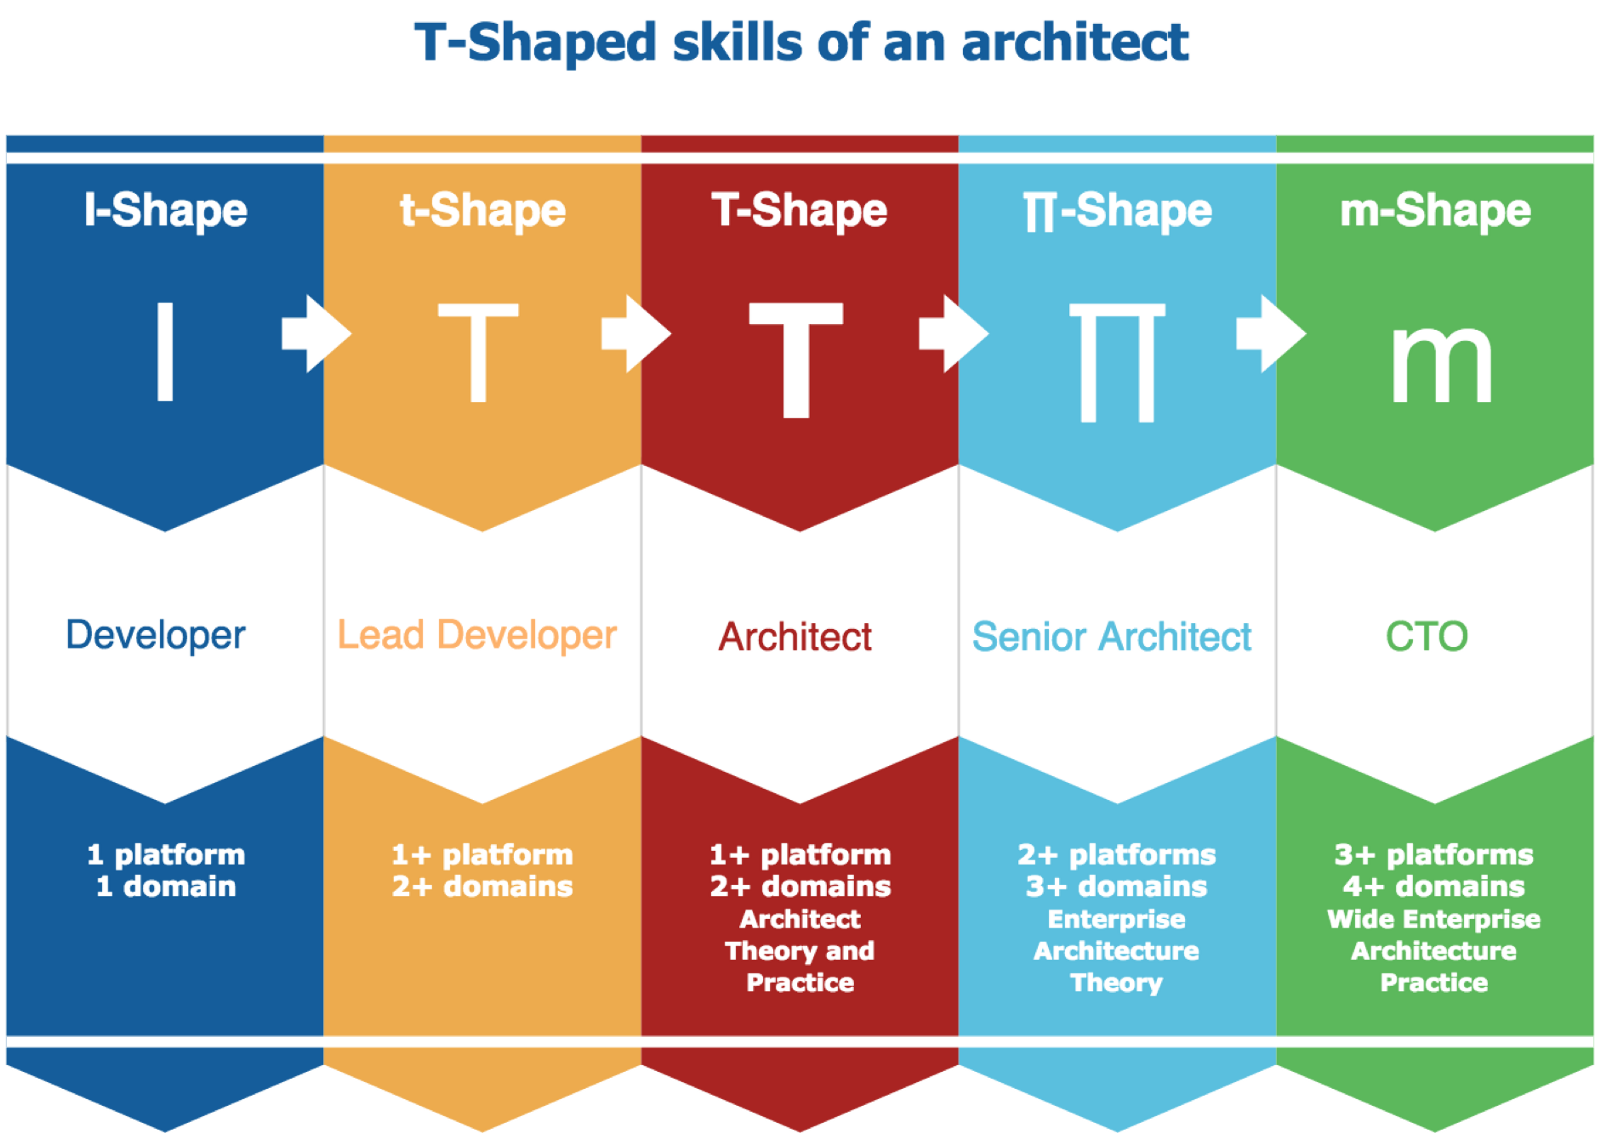 t shaped skills of an architect